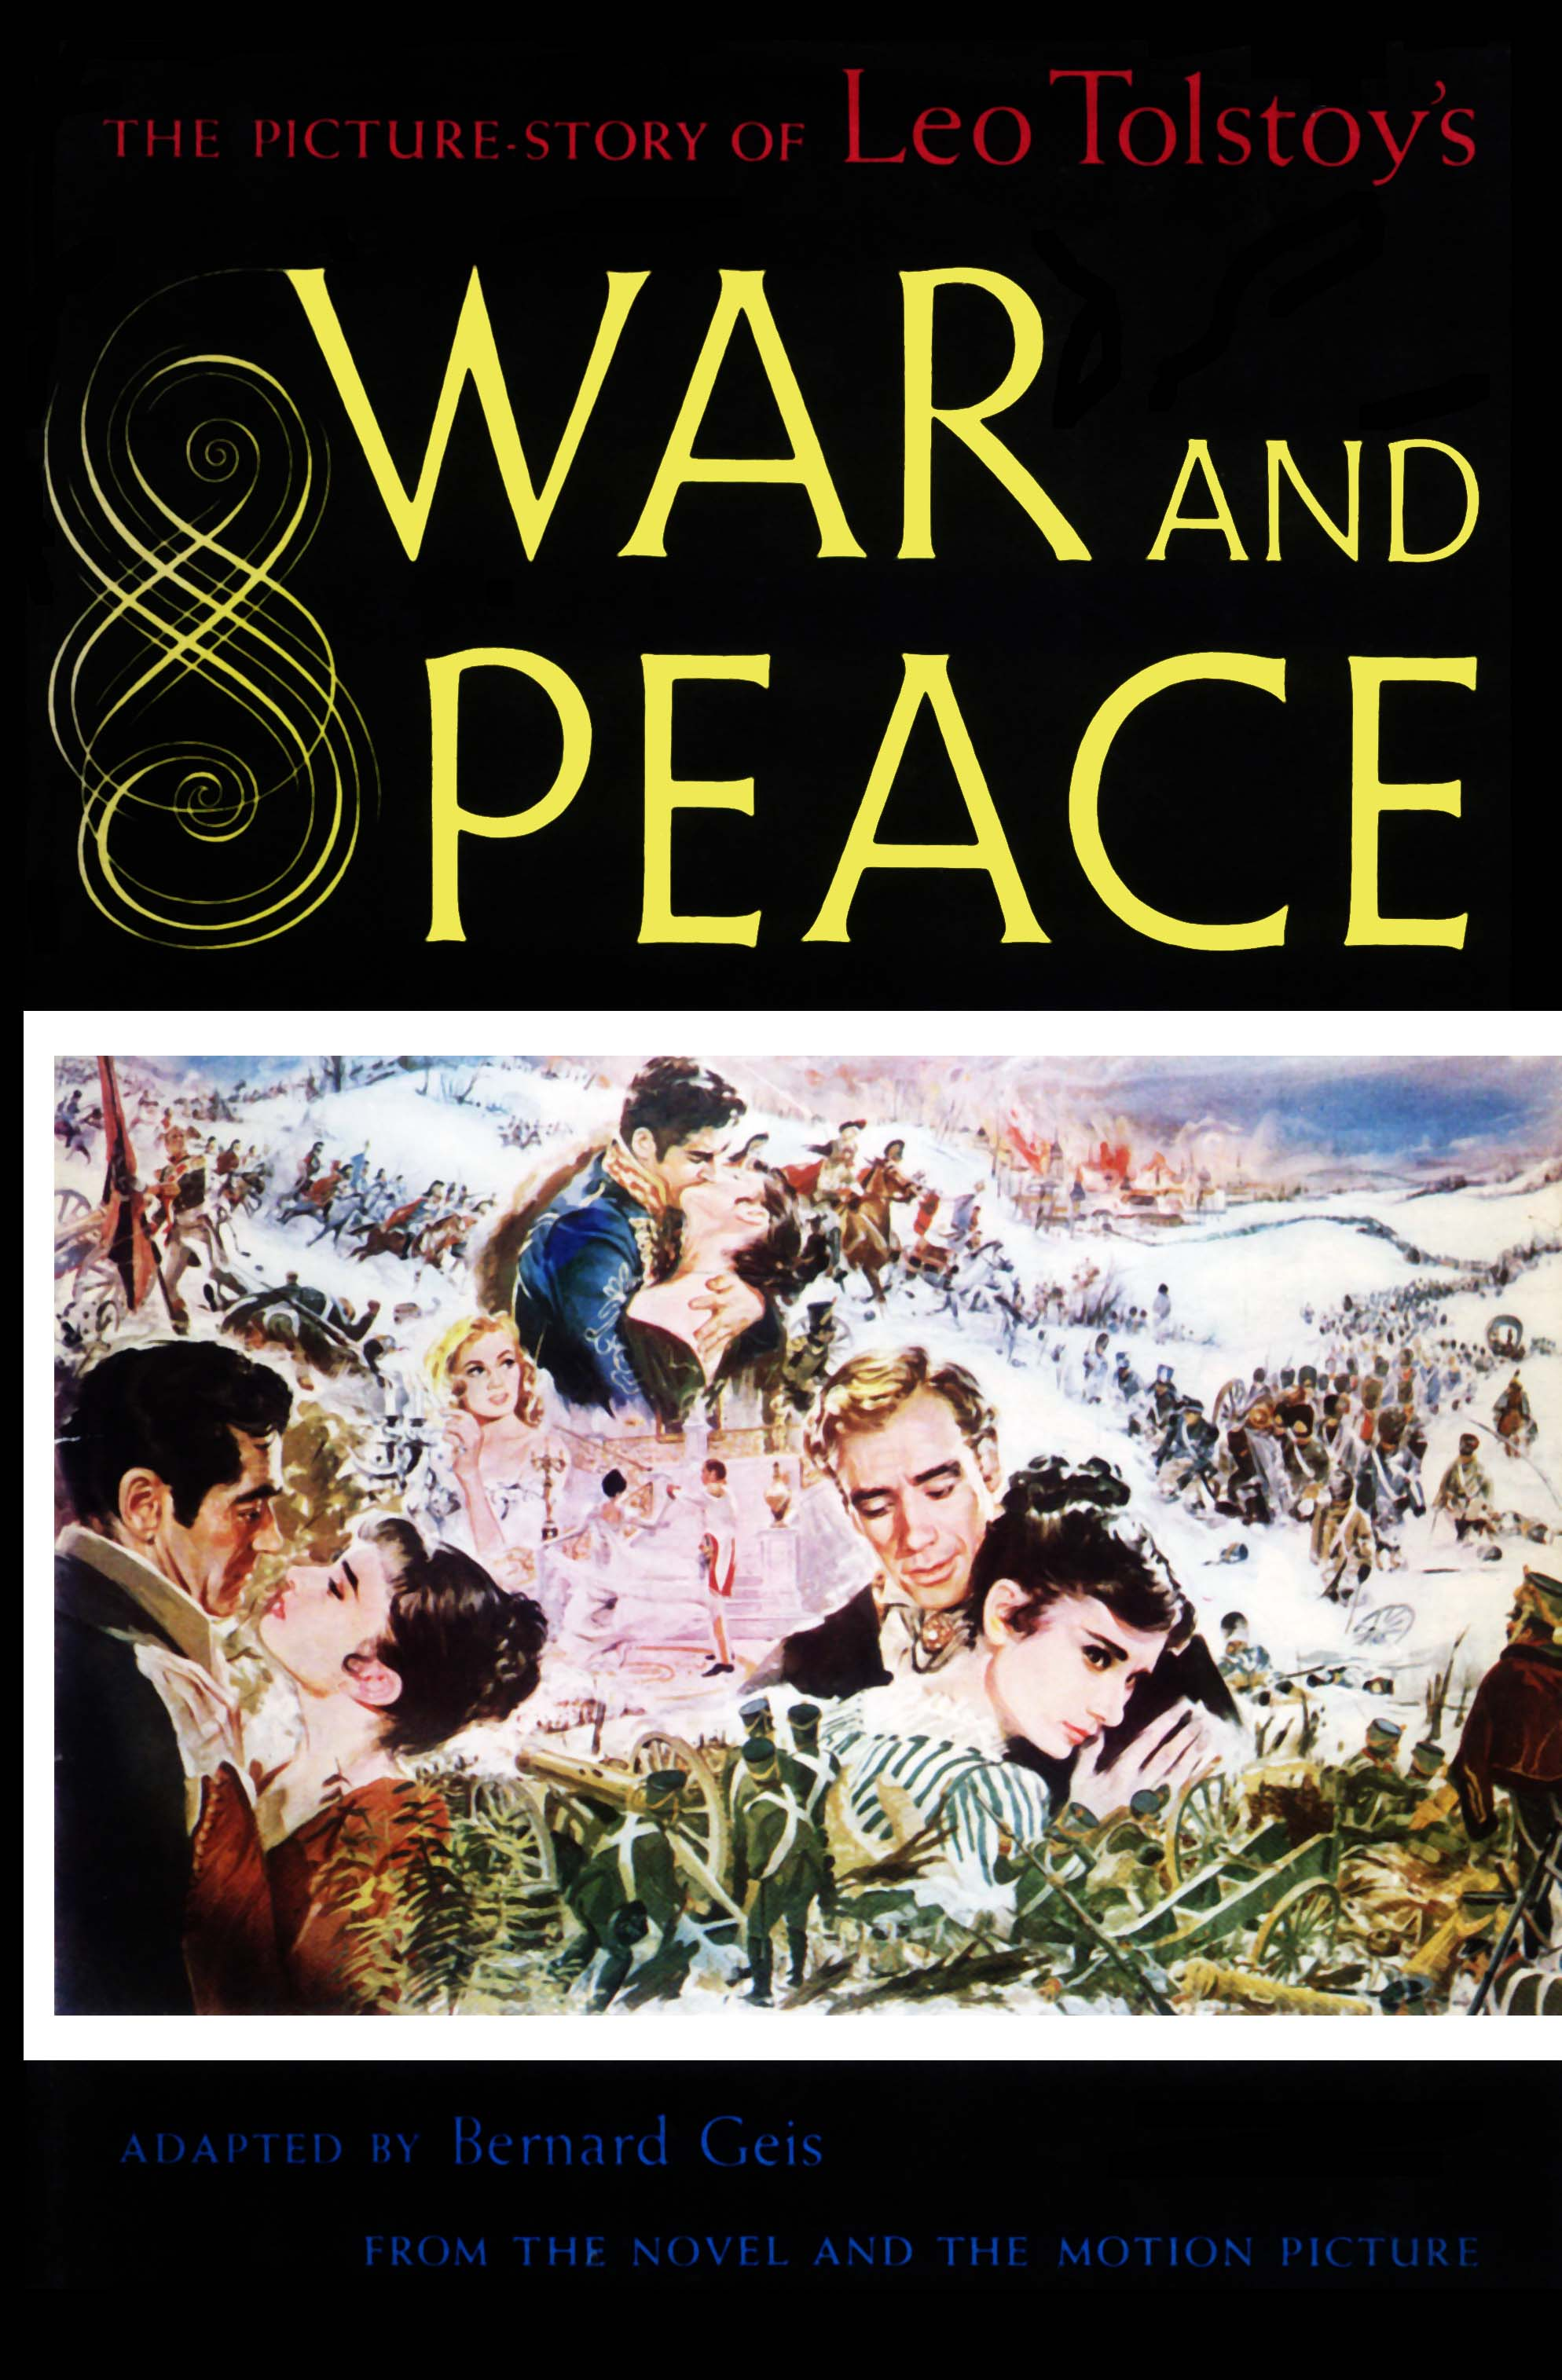 The Picture Story of Leo Tolstoy's War and Peace